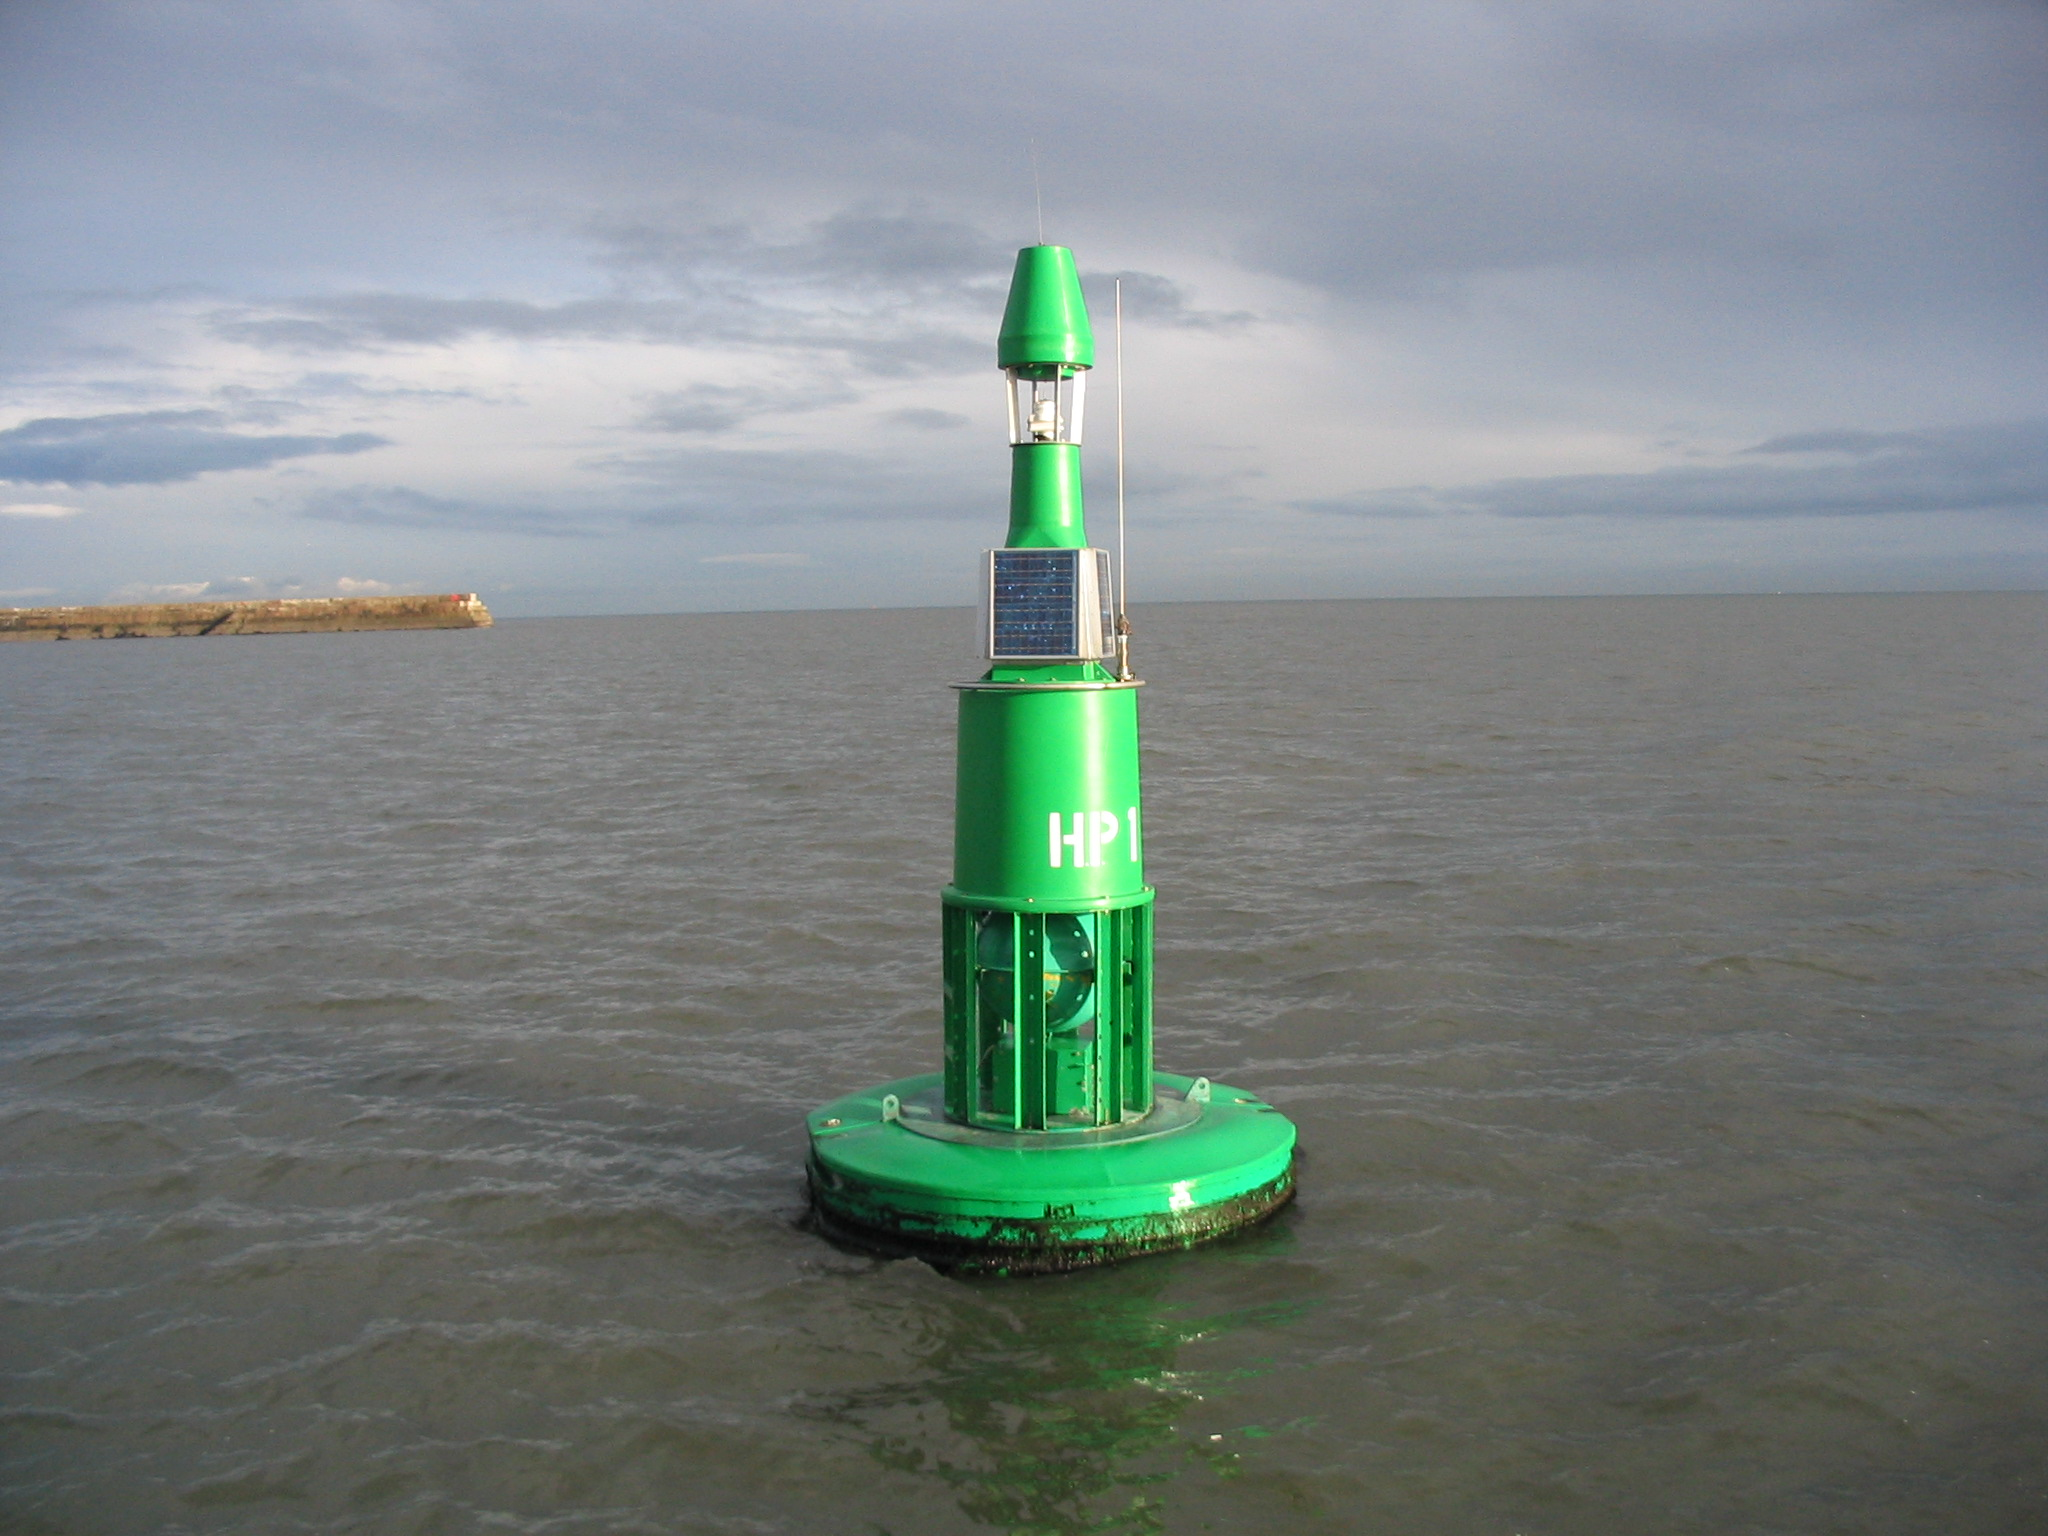 For Buoys That are Designed to Perform